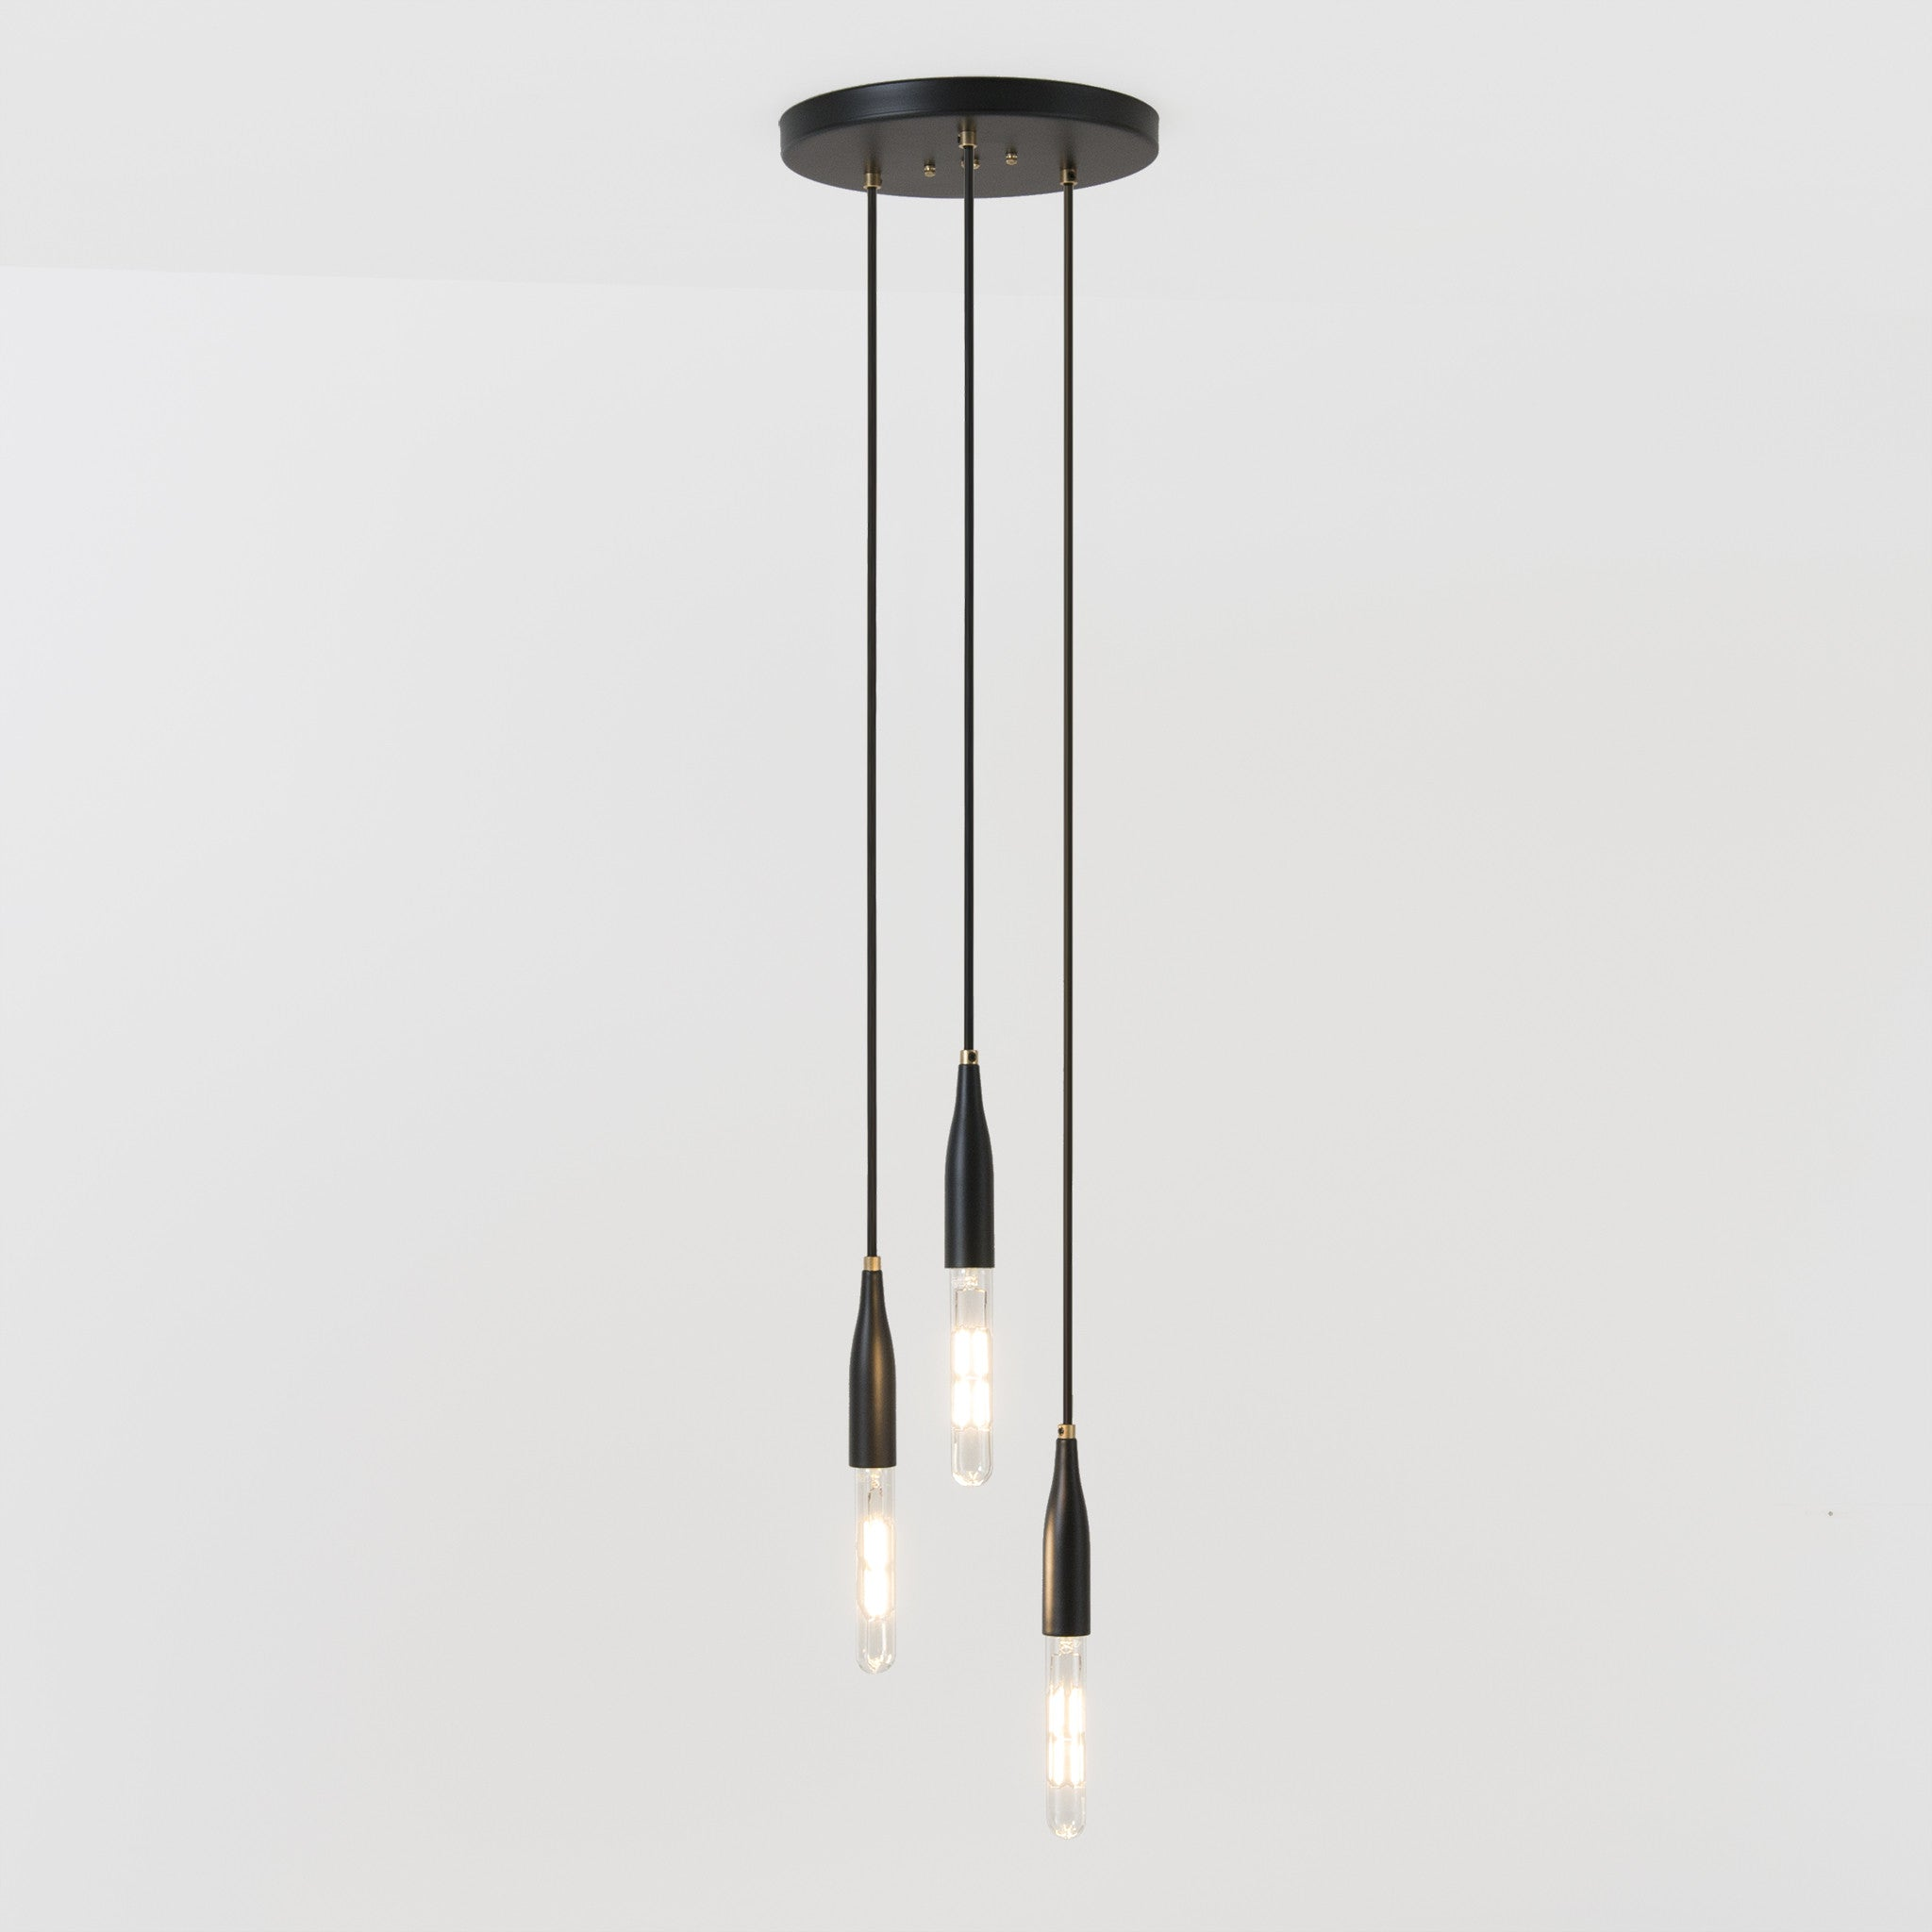 Studio DUNN's Flute collection minimalist chandelier in black poppy powder coat with brass details